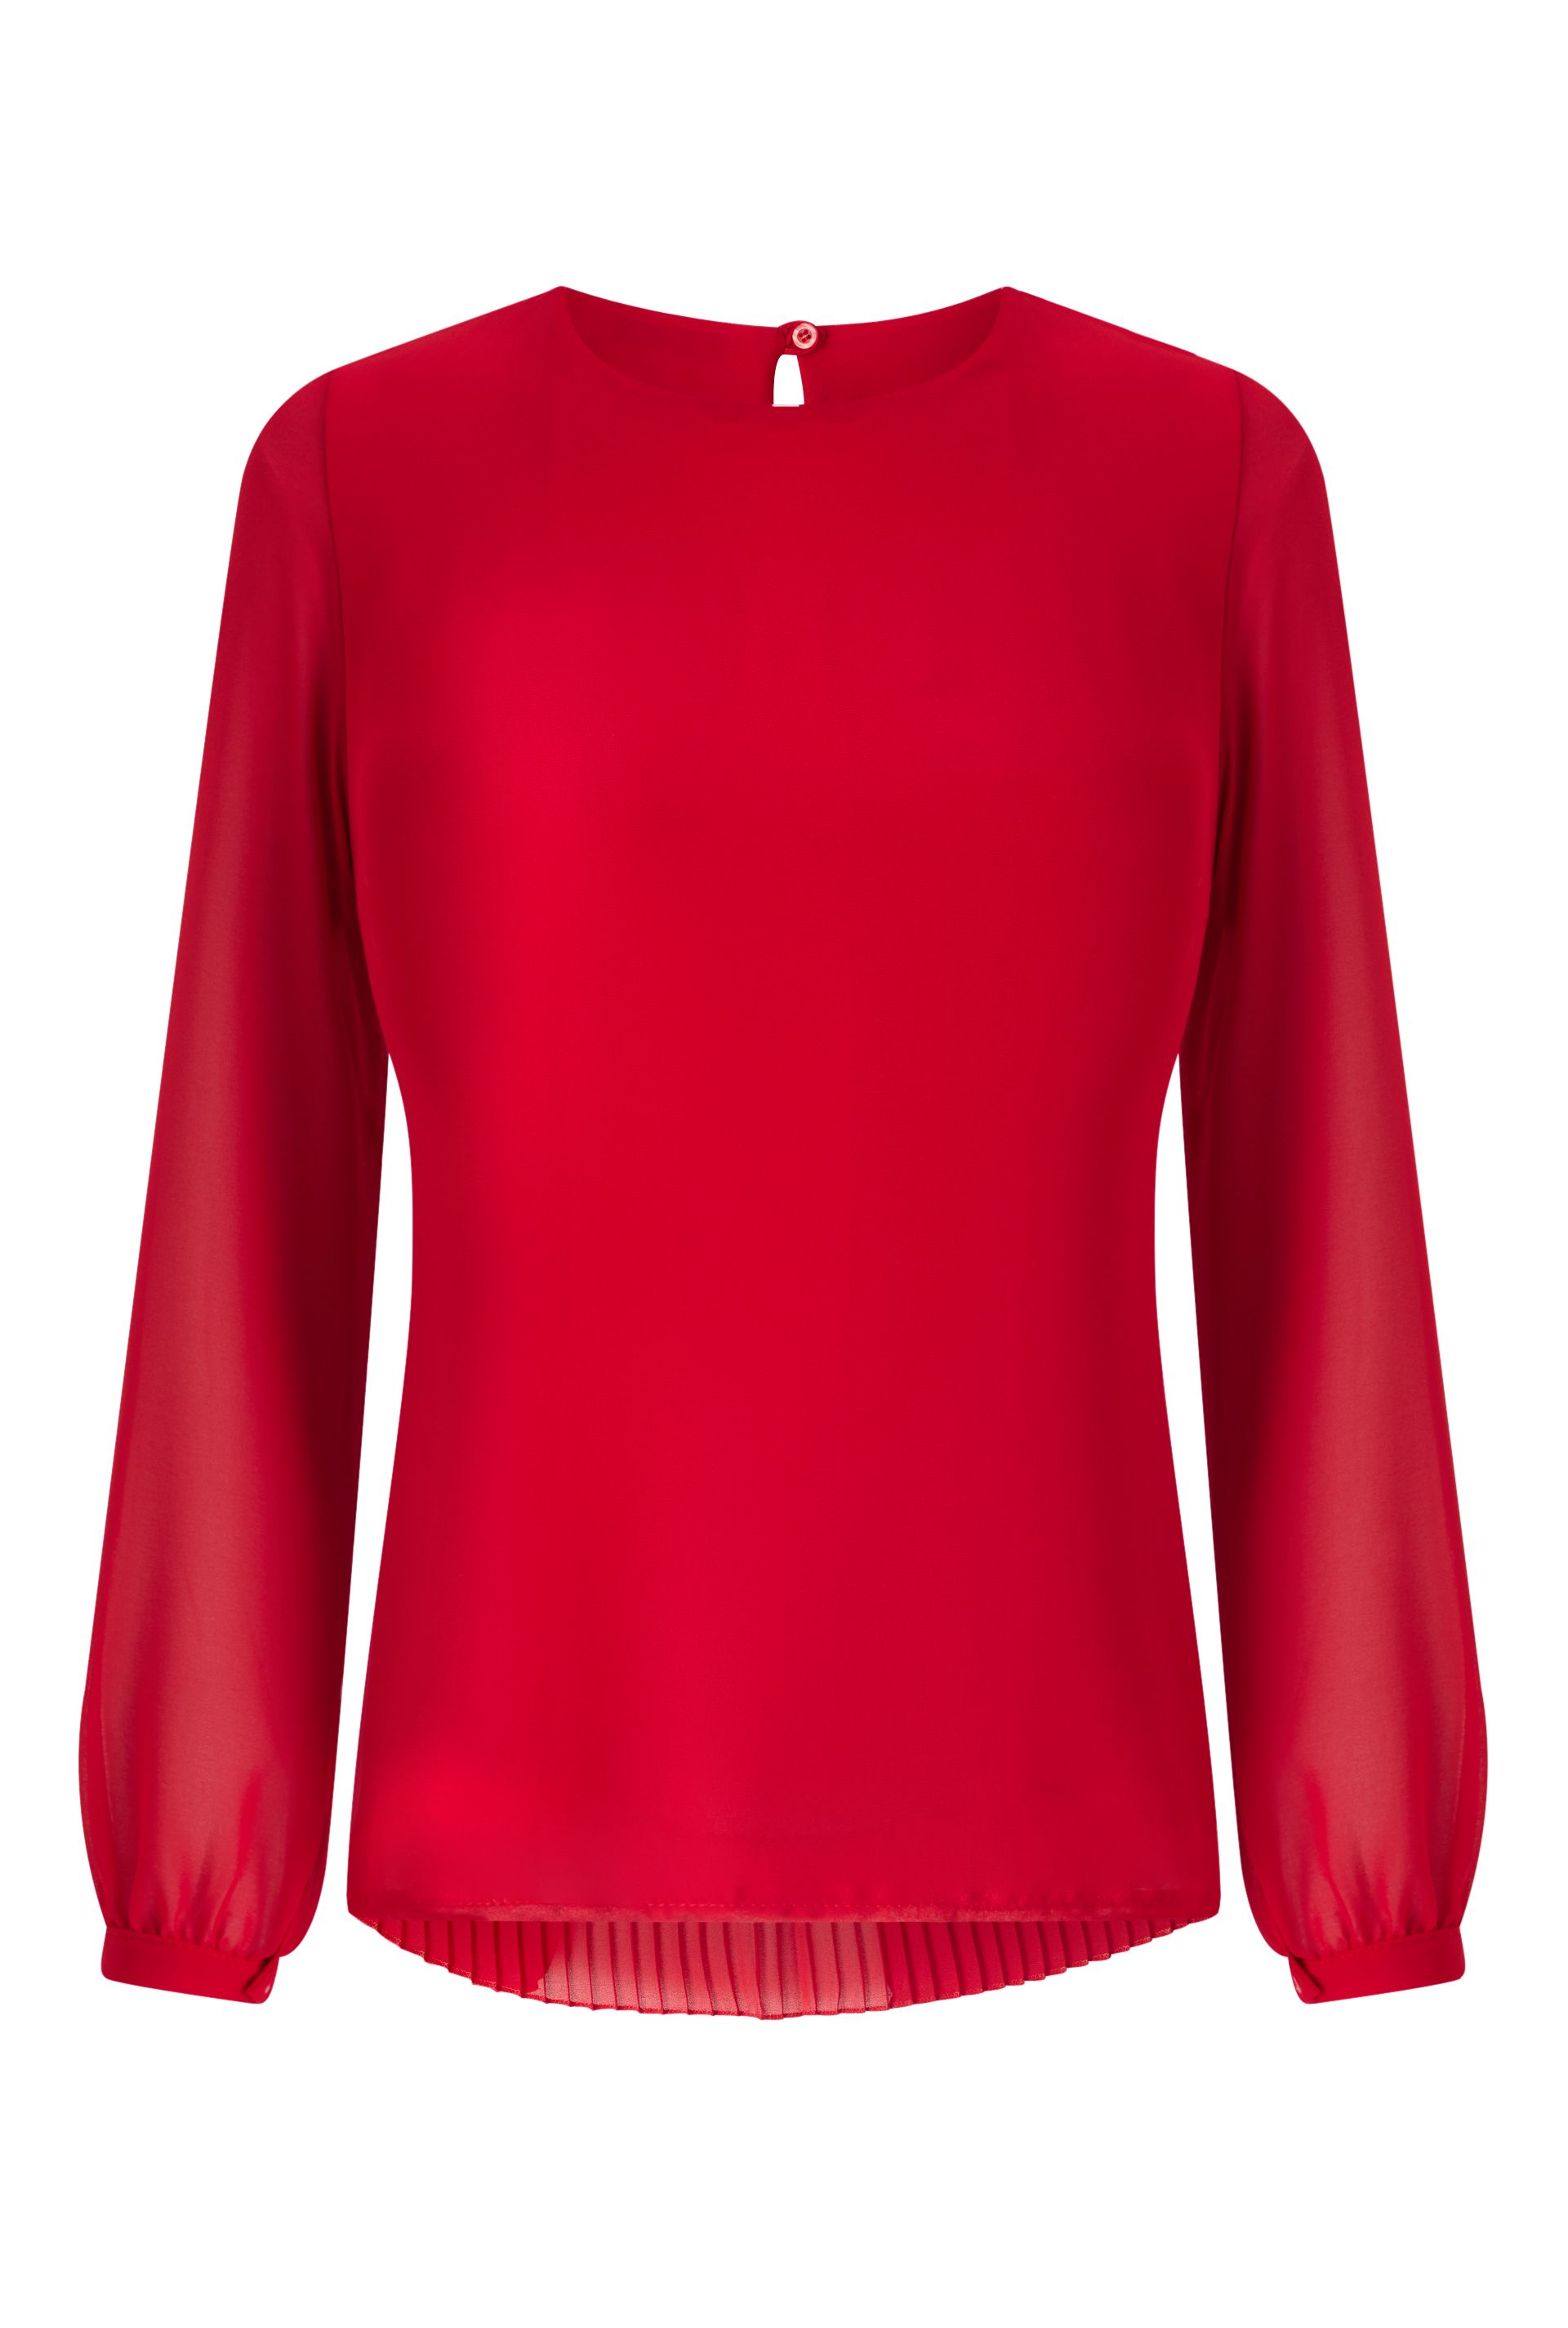 James Lakeland Pleat Back Blouse, Red